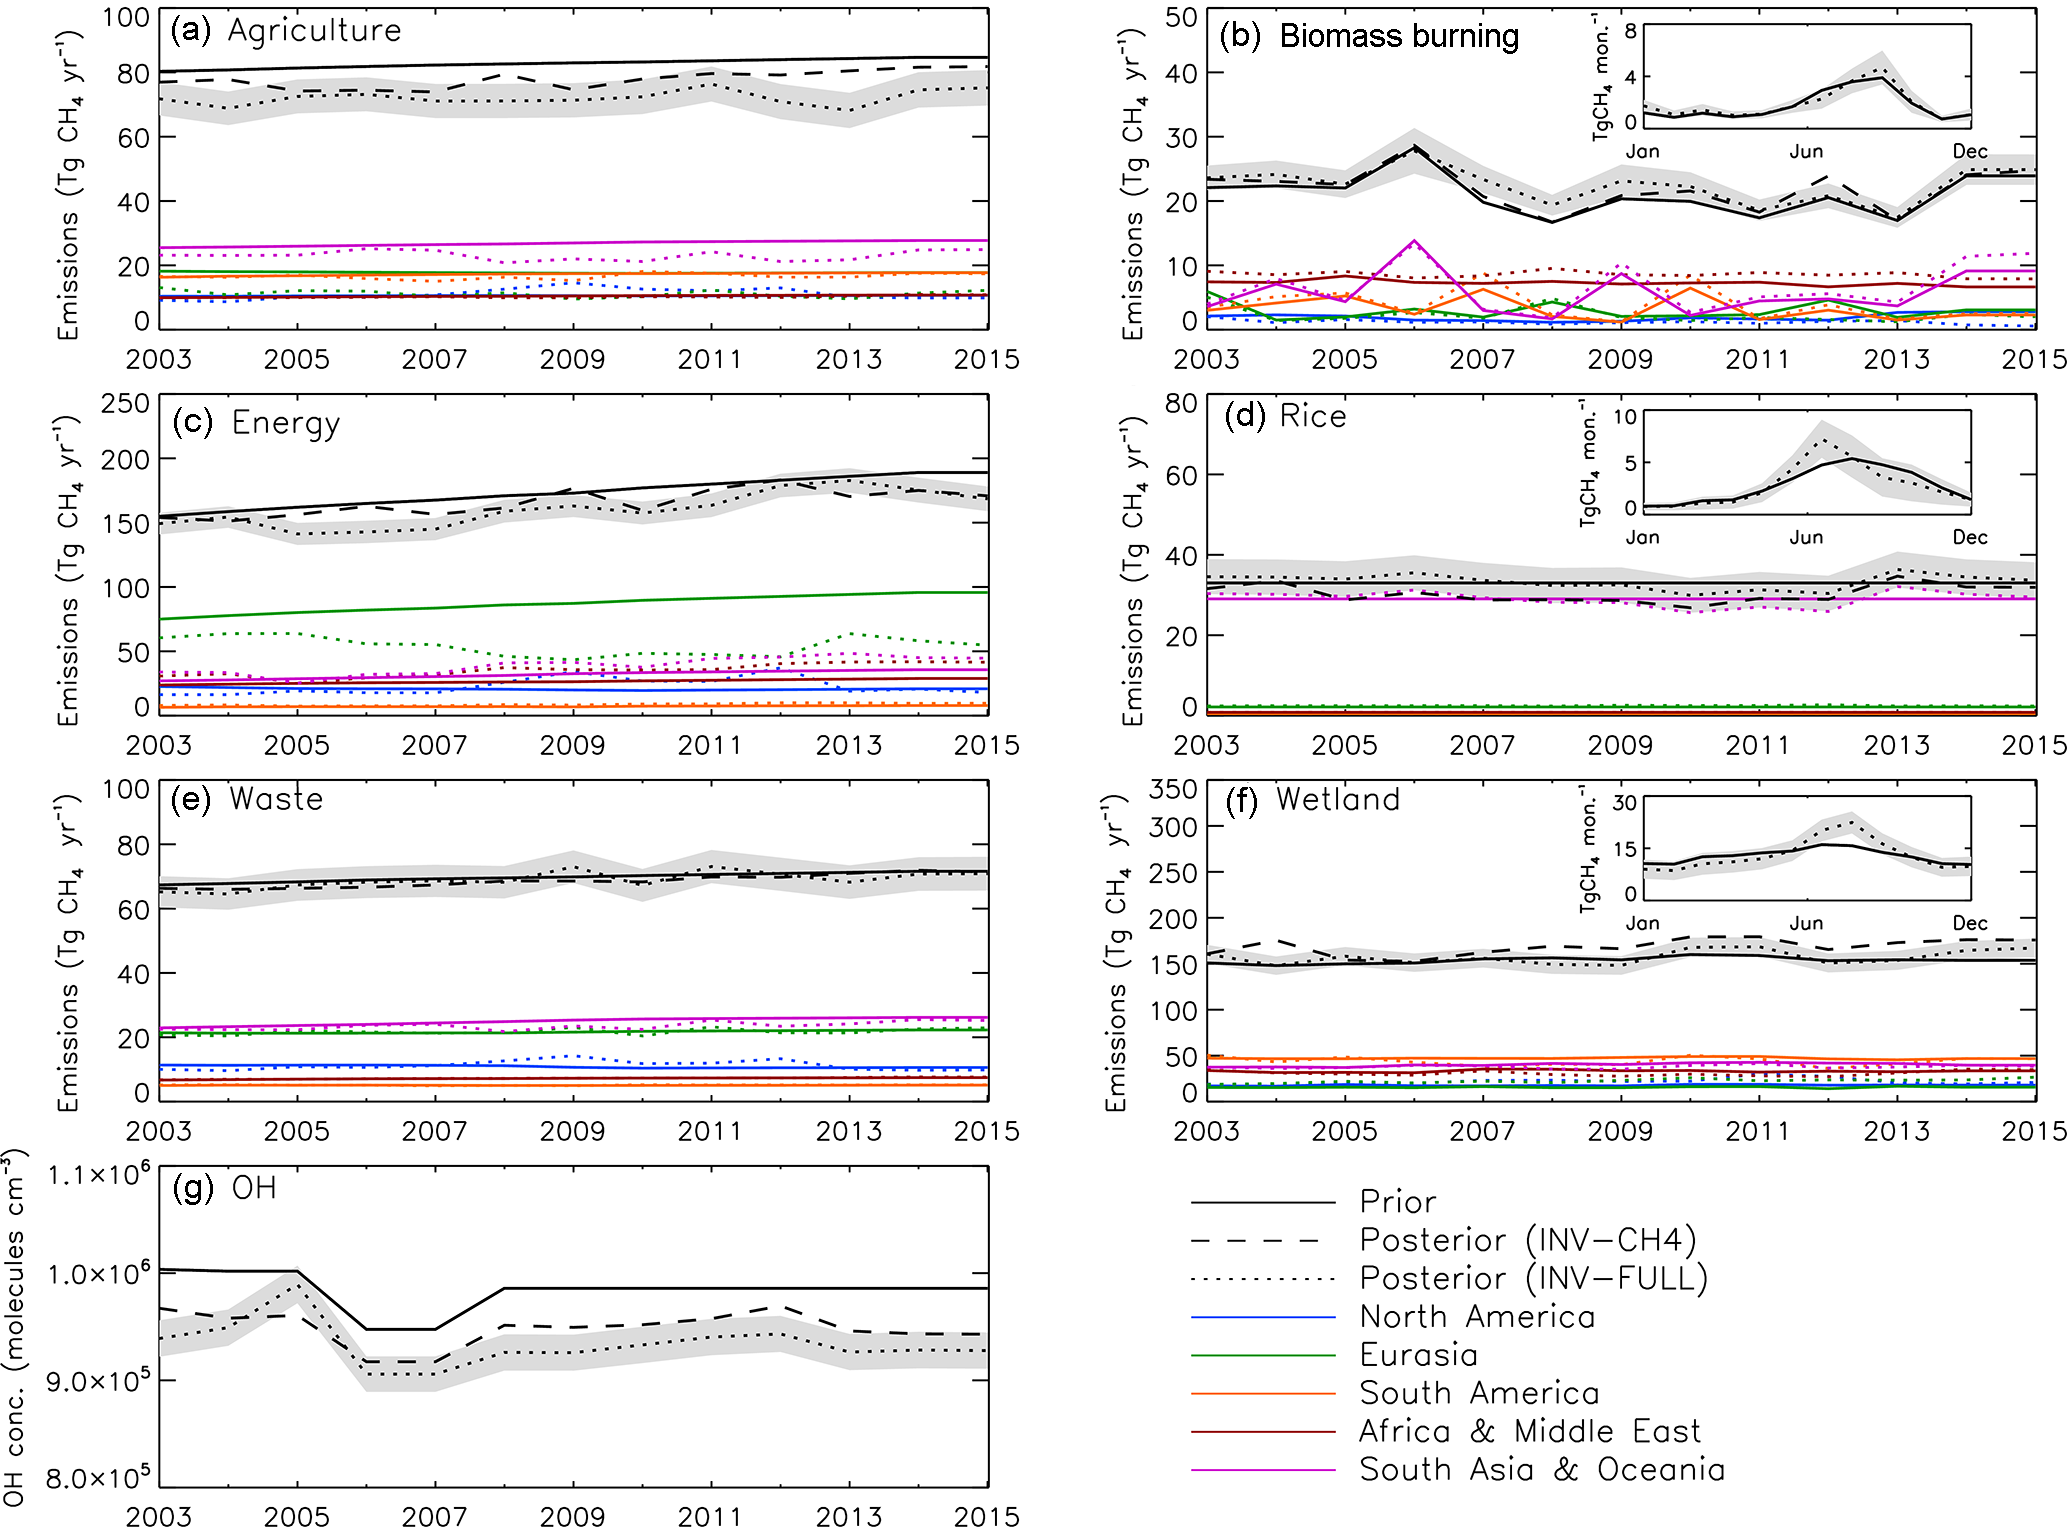 ACP - Attribution of recent increases in atmospheric methane